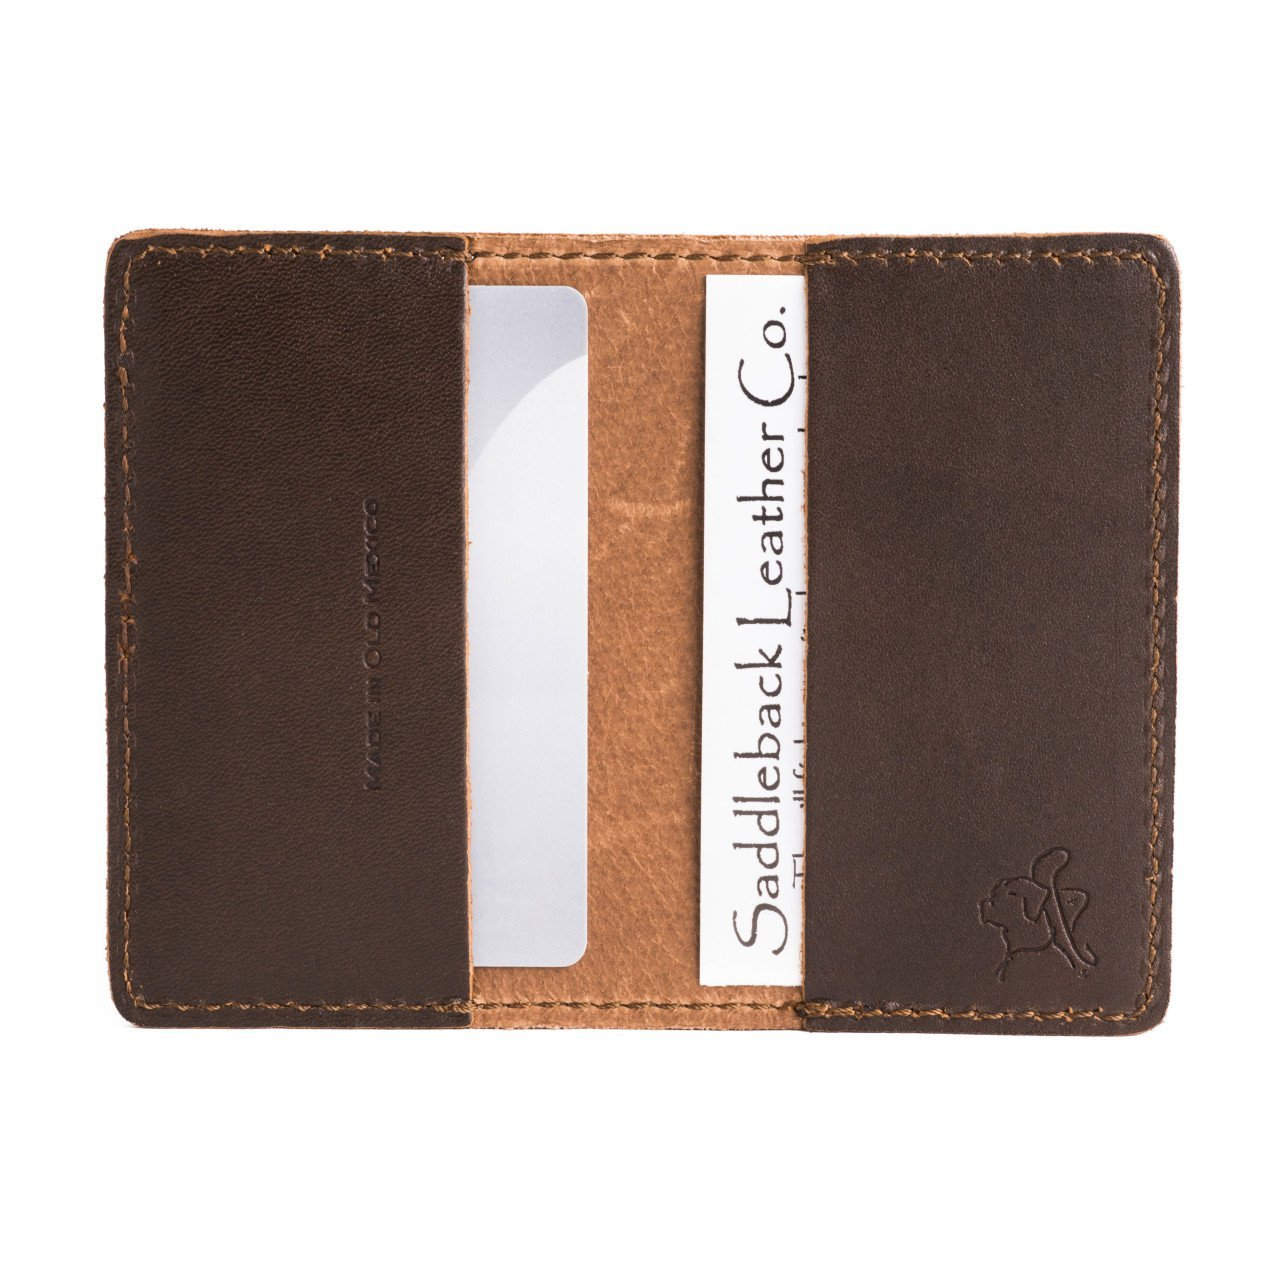 Saddleback Leather Co. Slim Multi Business Card Holder Full Grain Leather Wallet for Men and Women Includes 100 Year Warranty WA-CC-CB